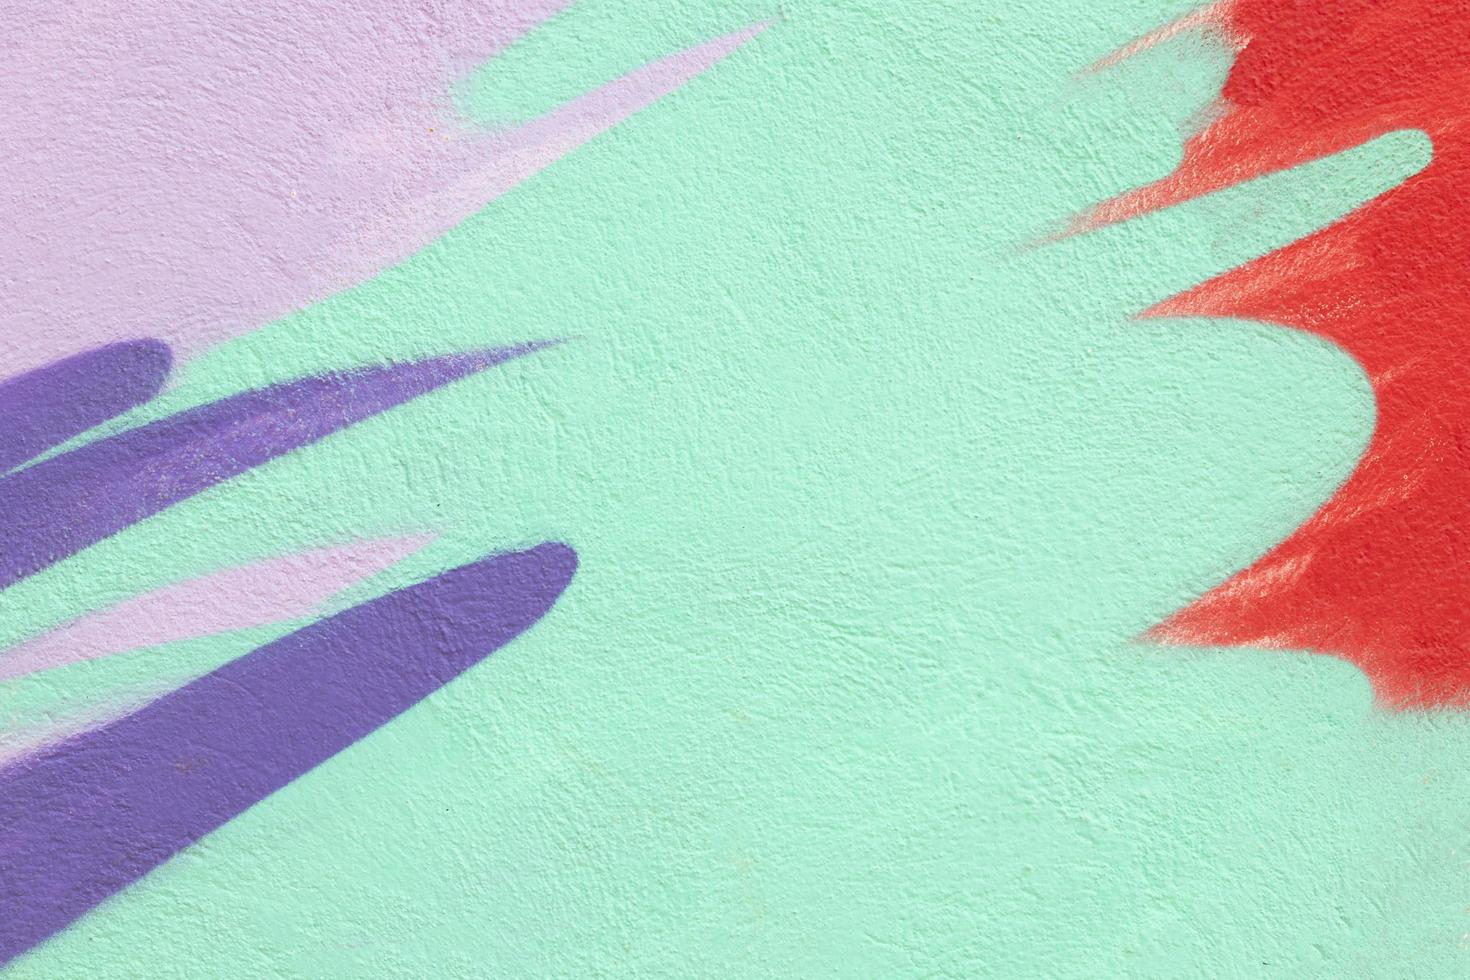 Colorful abstract textured drawing wall background photo